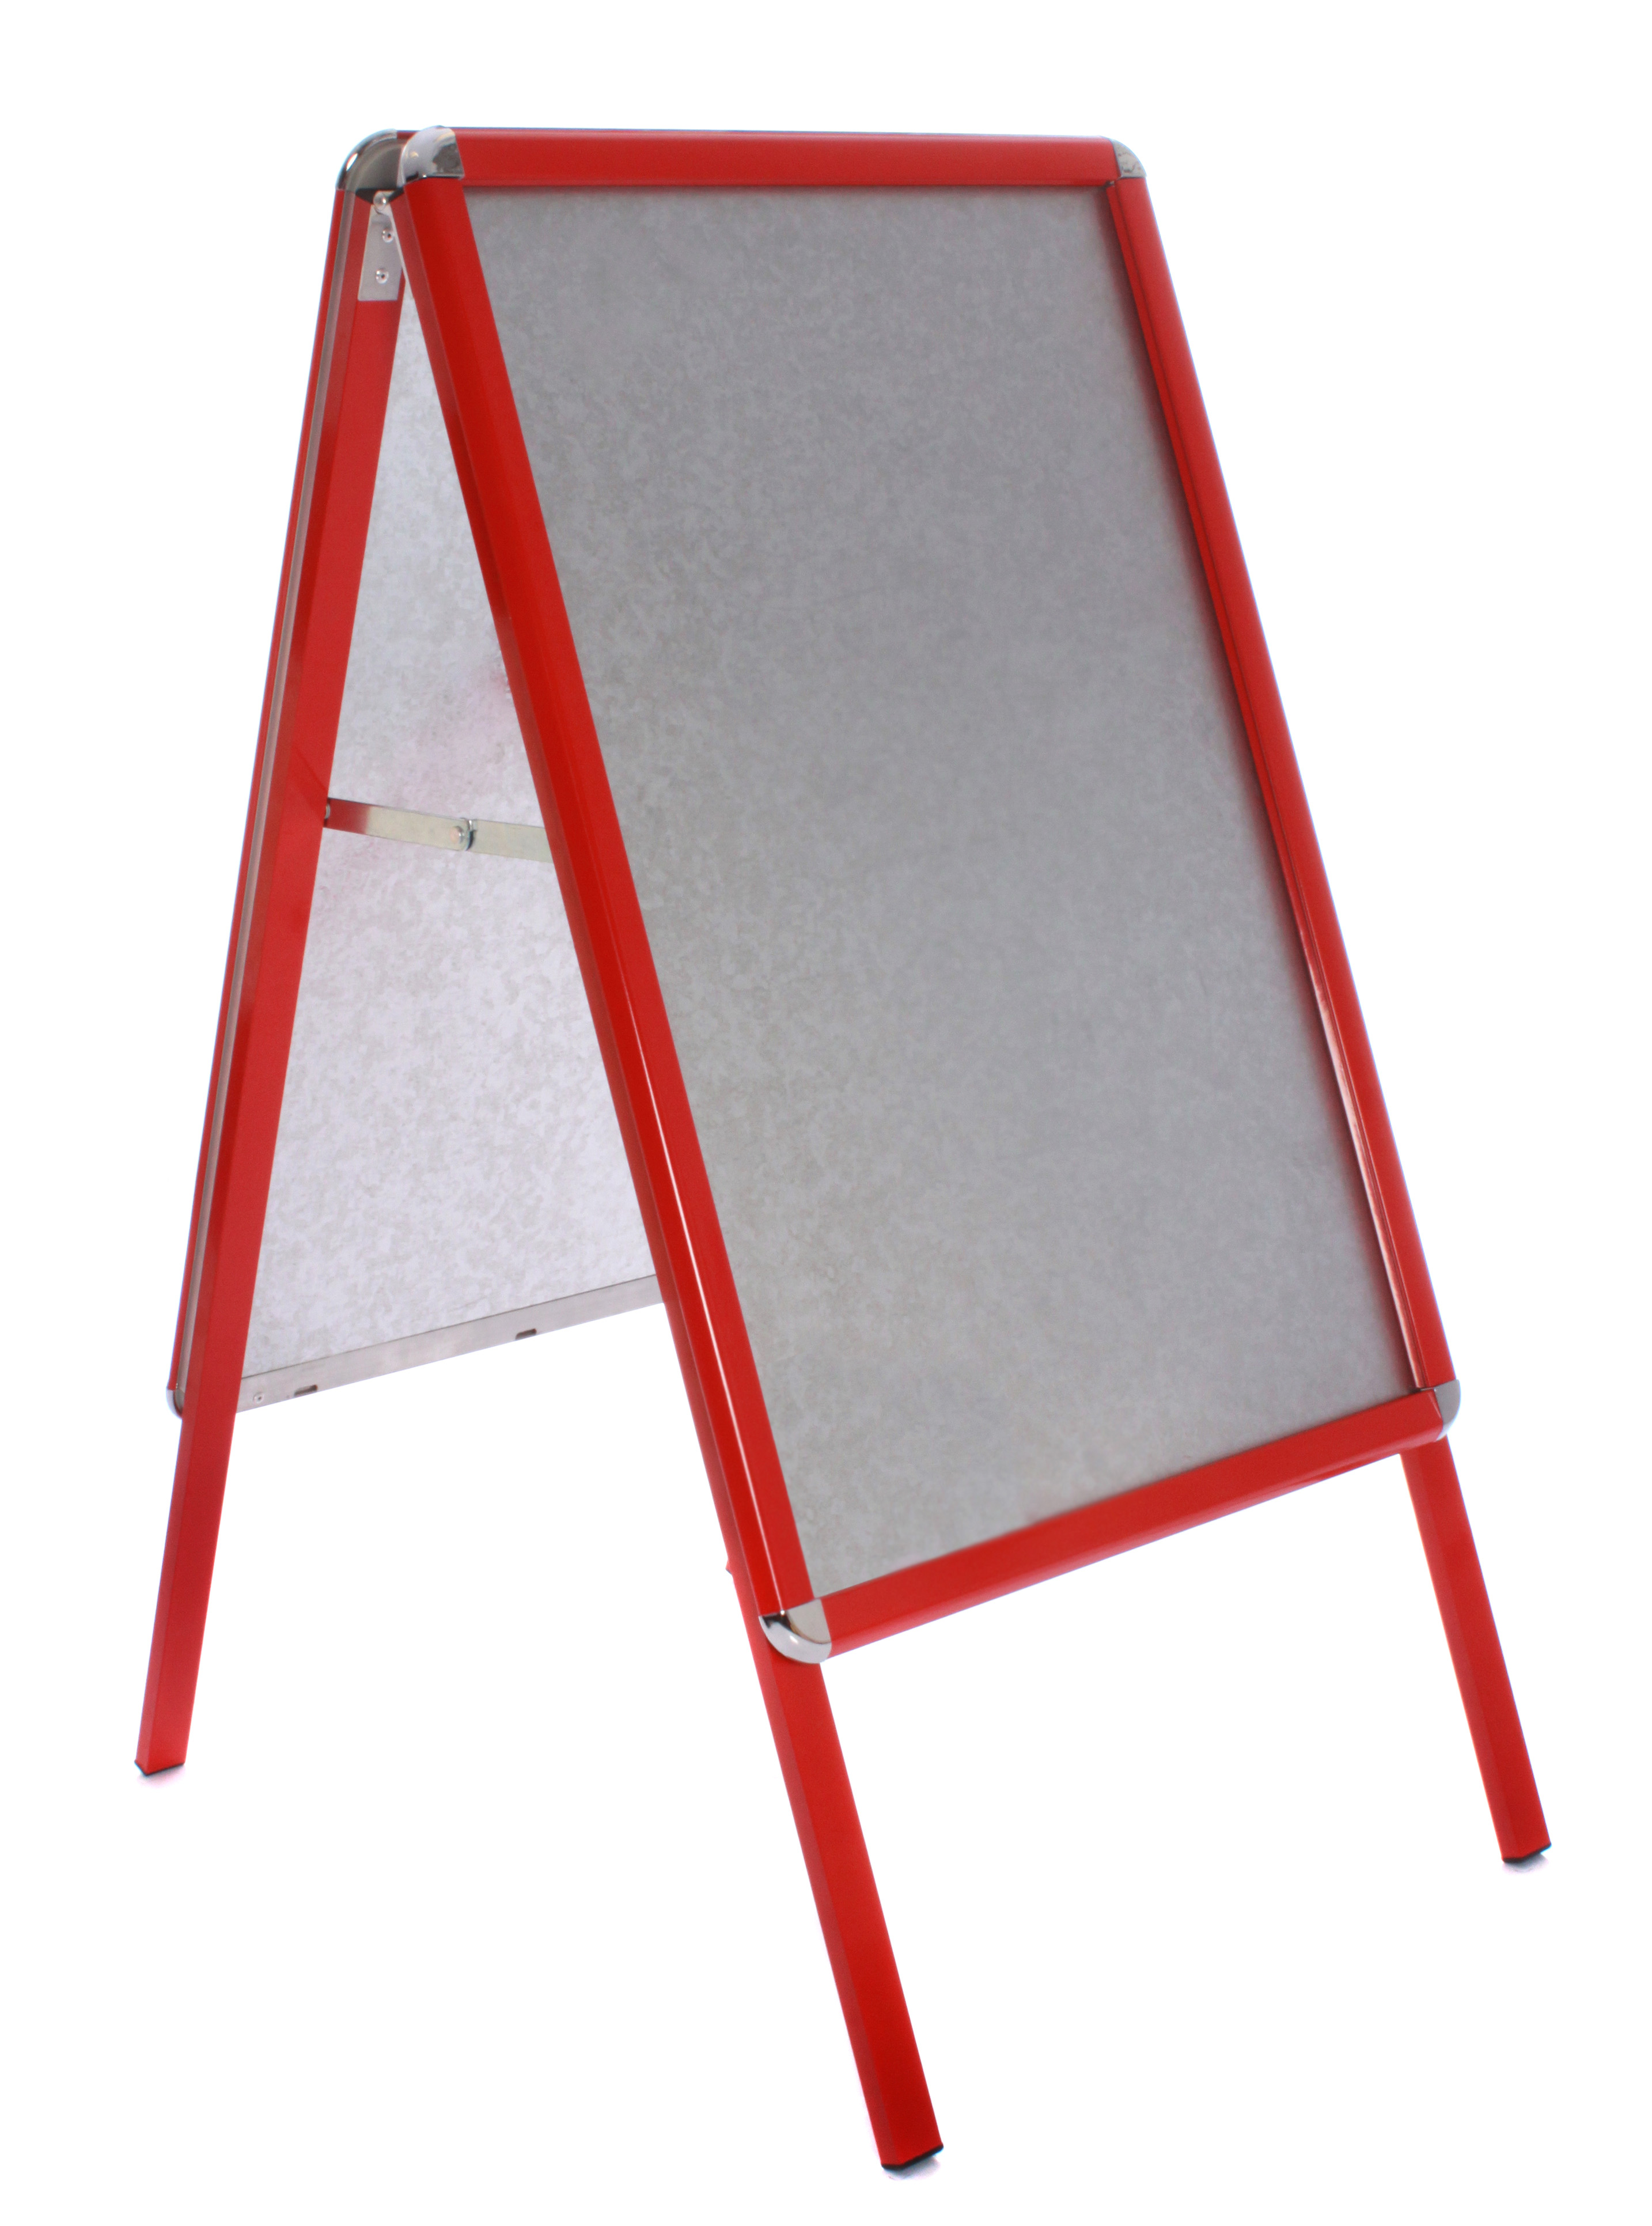 A Board Pavement Sign A1 Snap Frame A-Board Red Frame